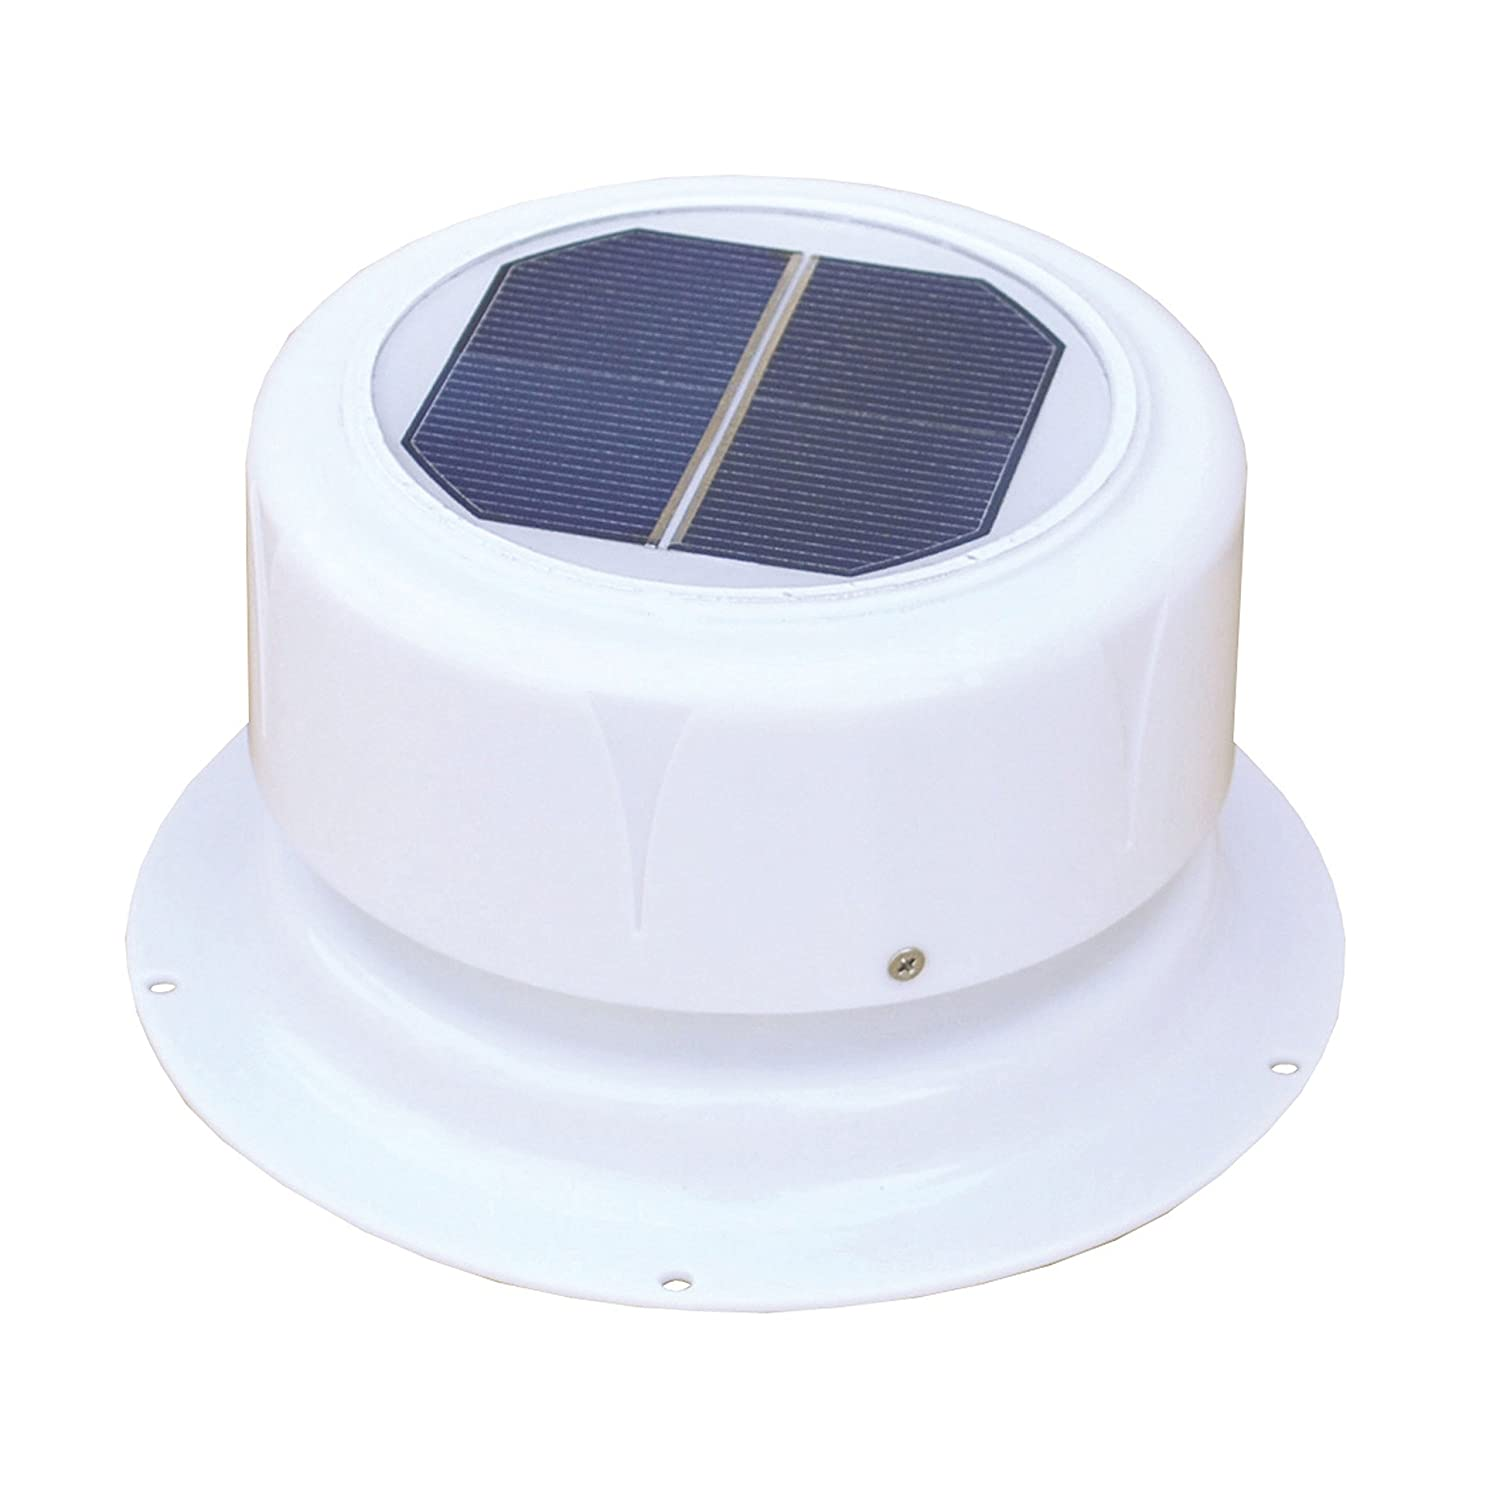 Small solar lights for crafts - Ultra Fab 53 945001 Mini Solar Plumbing Vent White